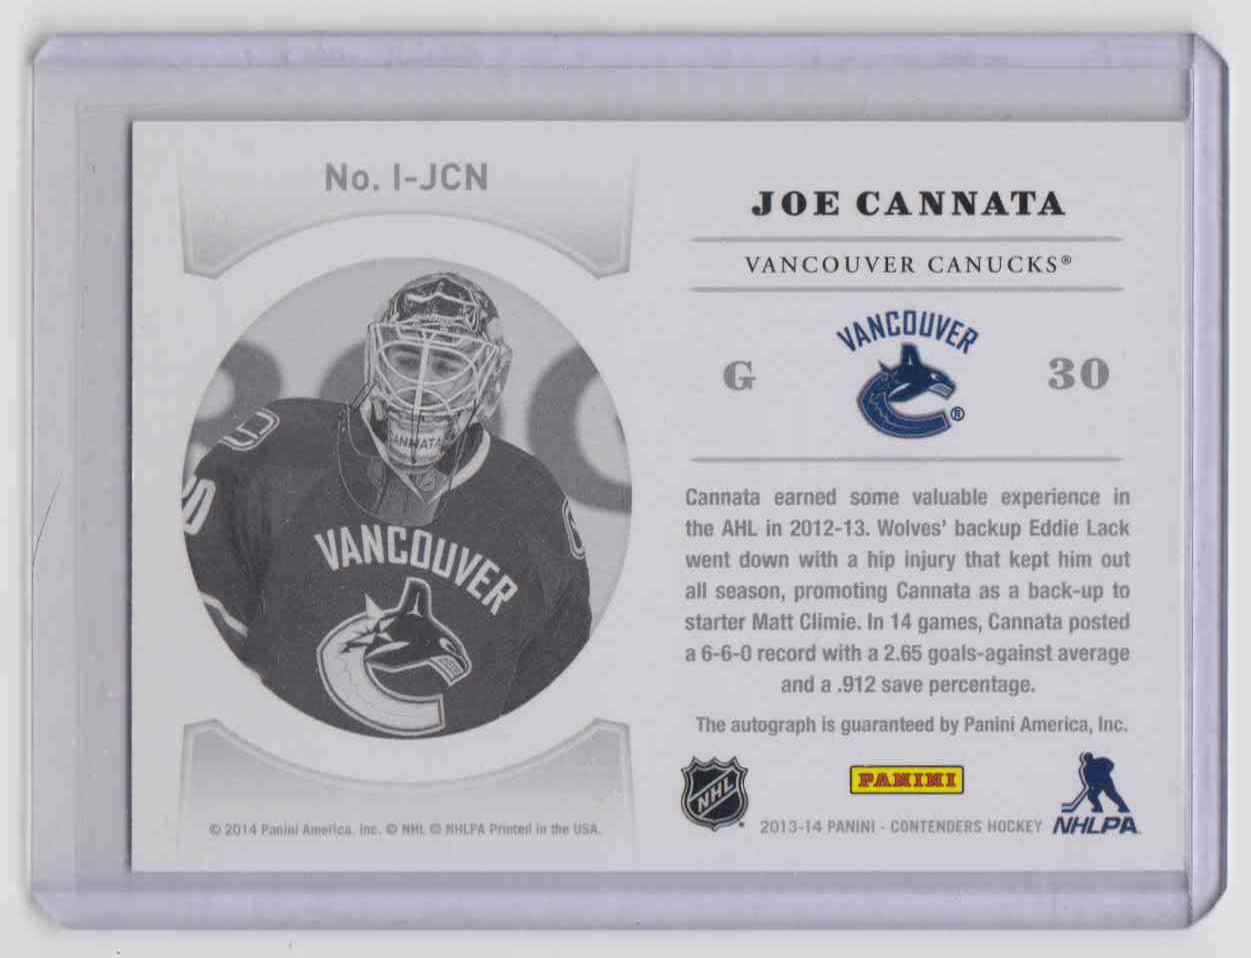 2013-14 Panini Contenders NHL Ink Joe Cannata #I-JCN card back image